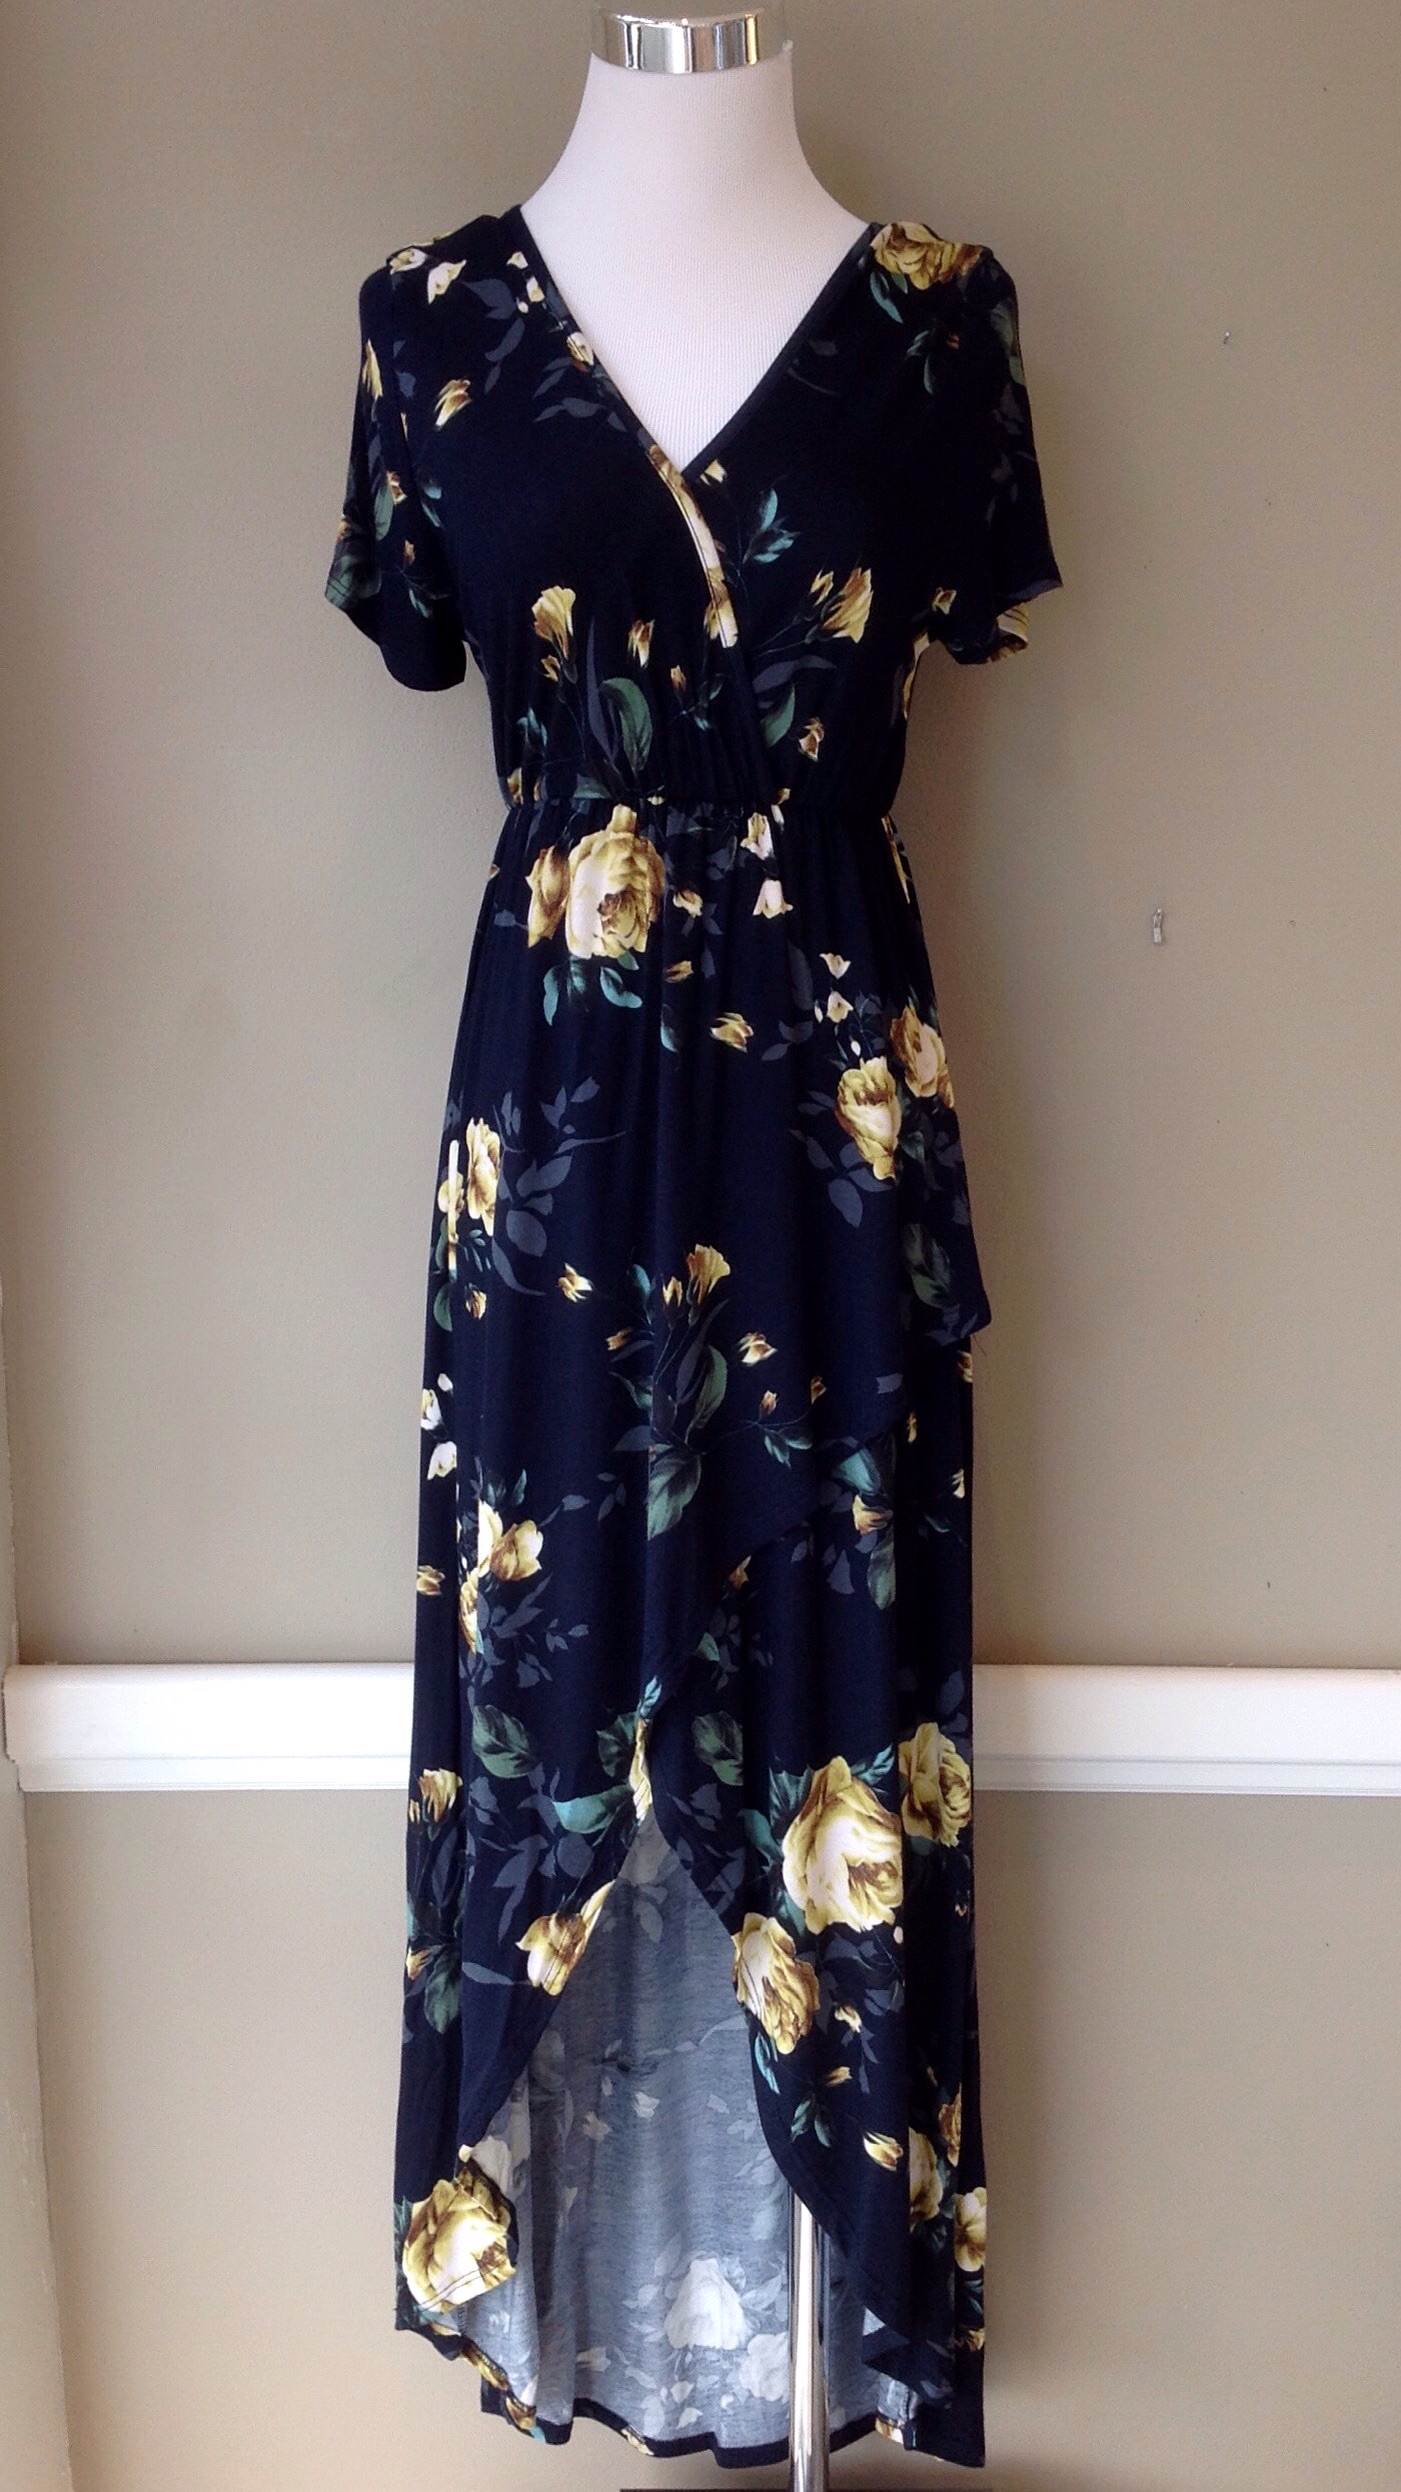 Short sleeve floral maxi dress with high-low hem in navy multi, $45